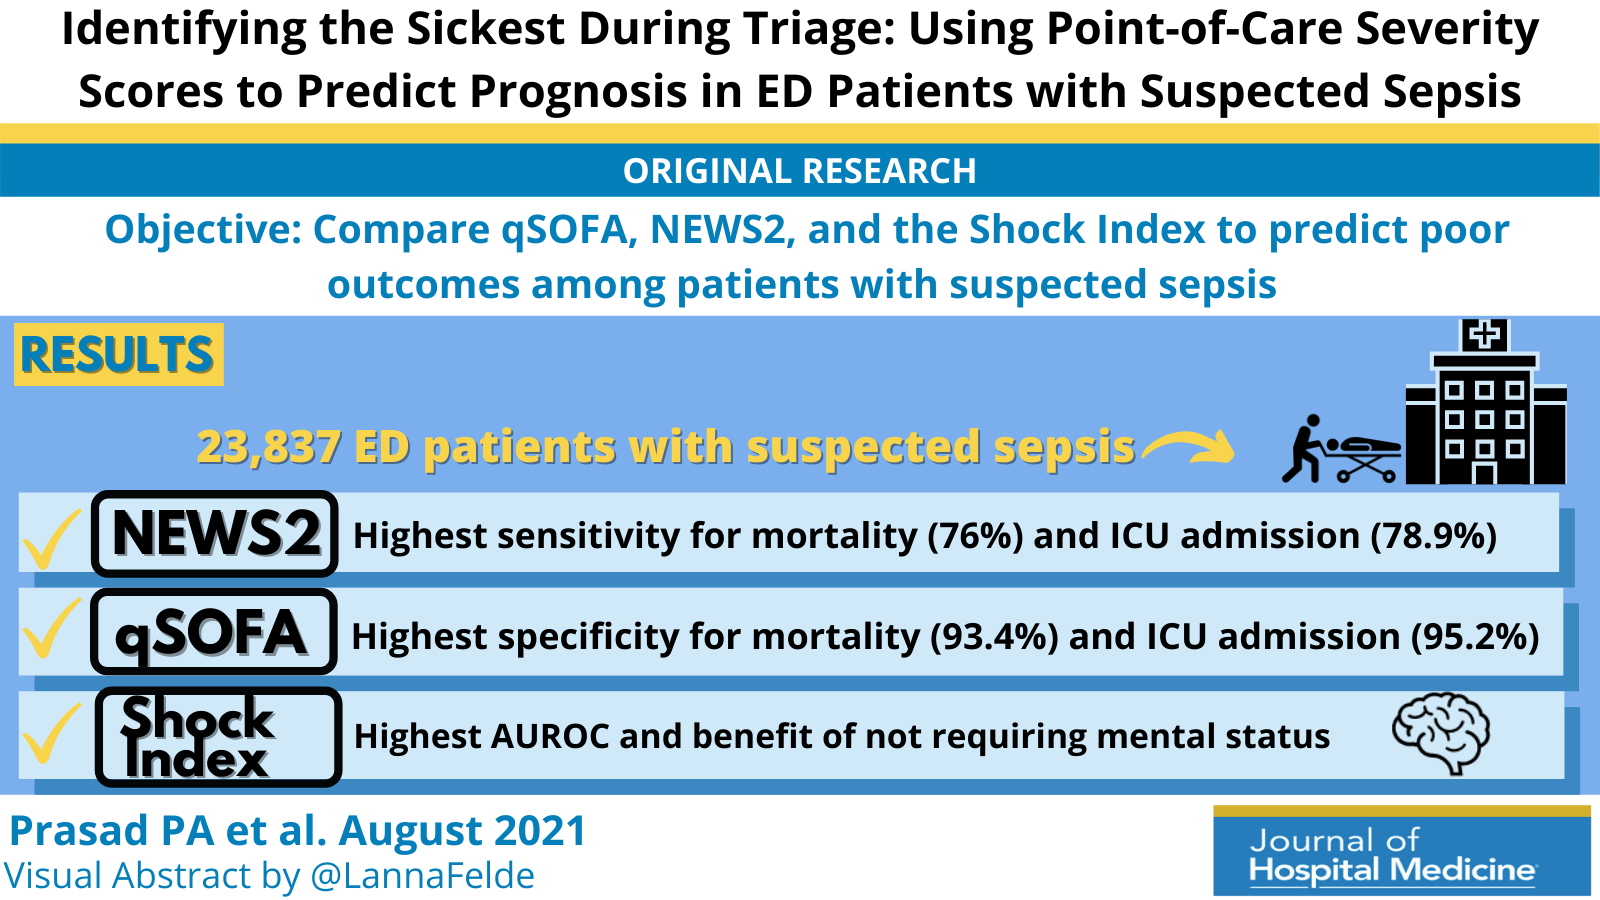 Identifying the Sickest During Triage: Using Point-of-Care Severity Scores to Predict Prognosis in Emergency Department Patients With Suspected Sepsis